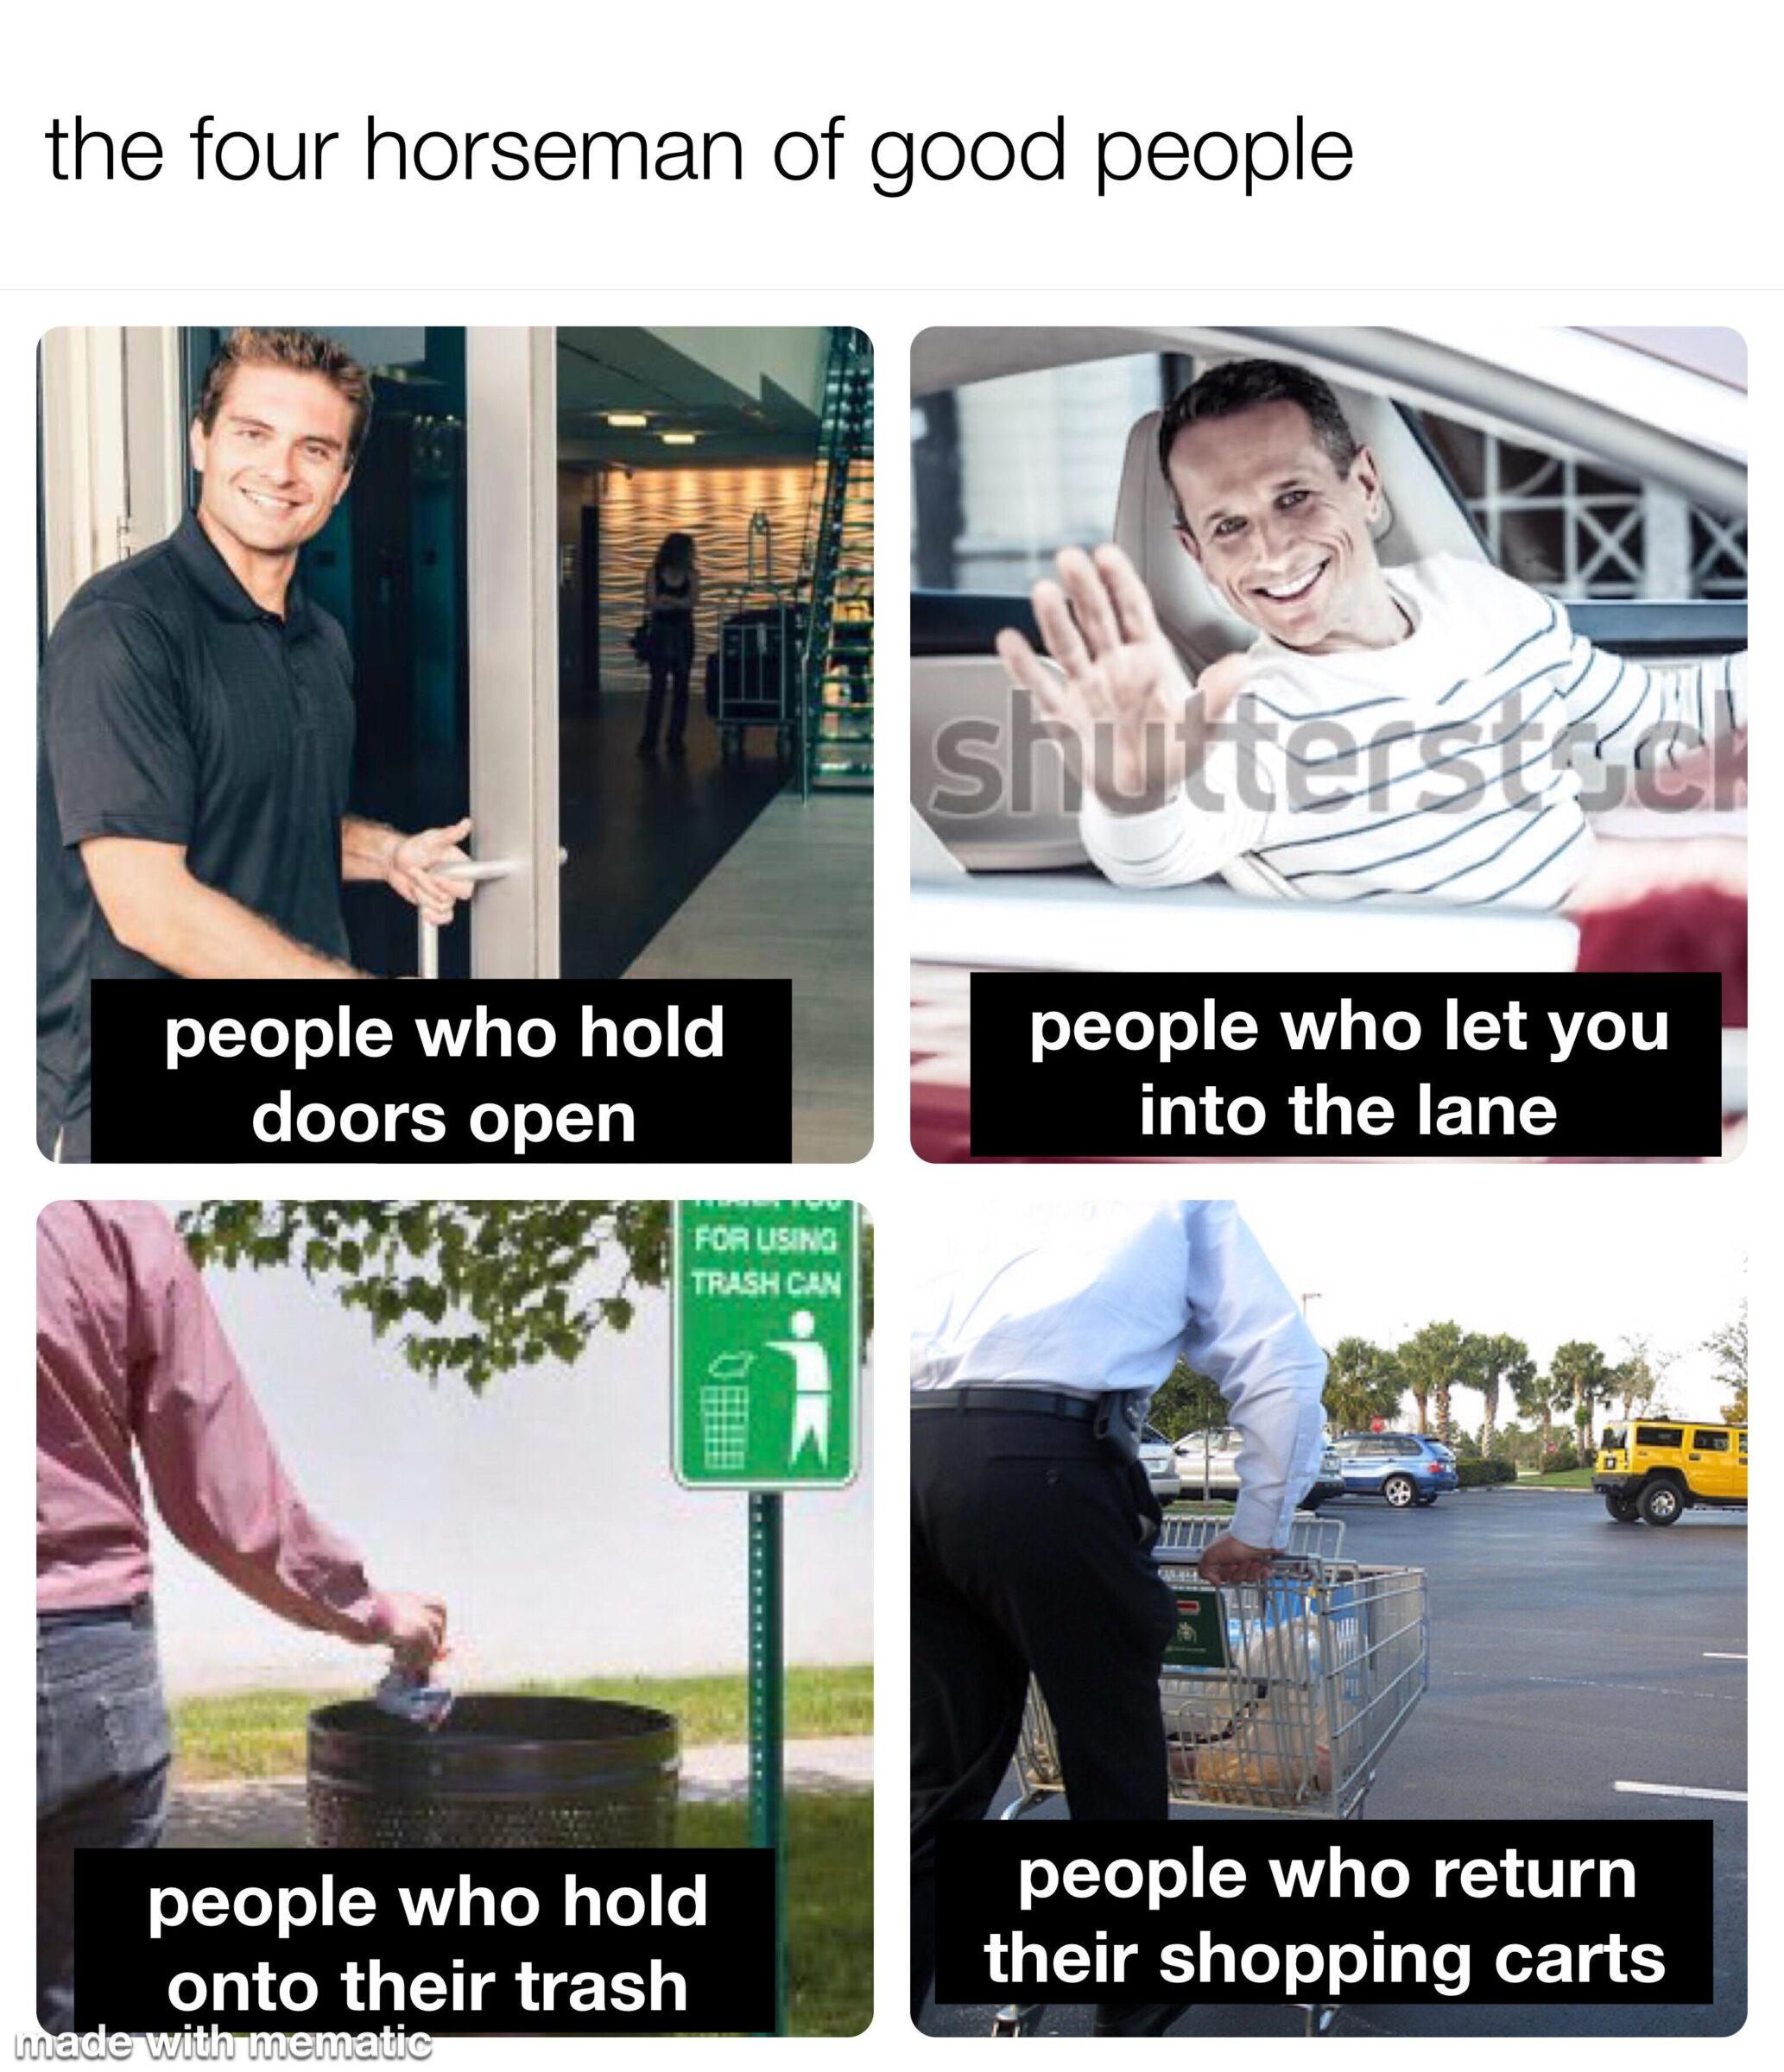 Wholesome memes,  Wholesome Memes Wholesome memes,  text: the four horseman of good people people who hold doors open people who hold onto their trash wit memati people who let you into the lane people who return their shopping carts